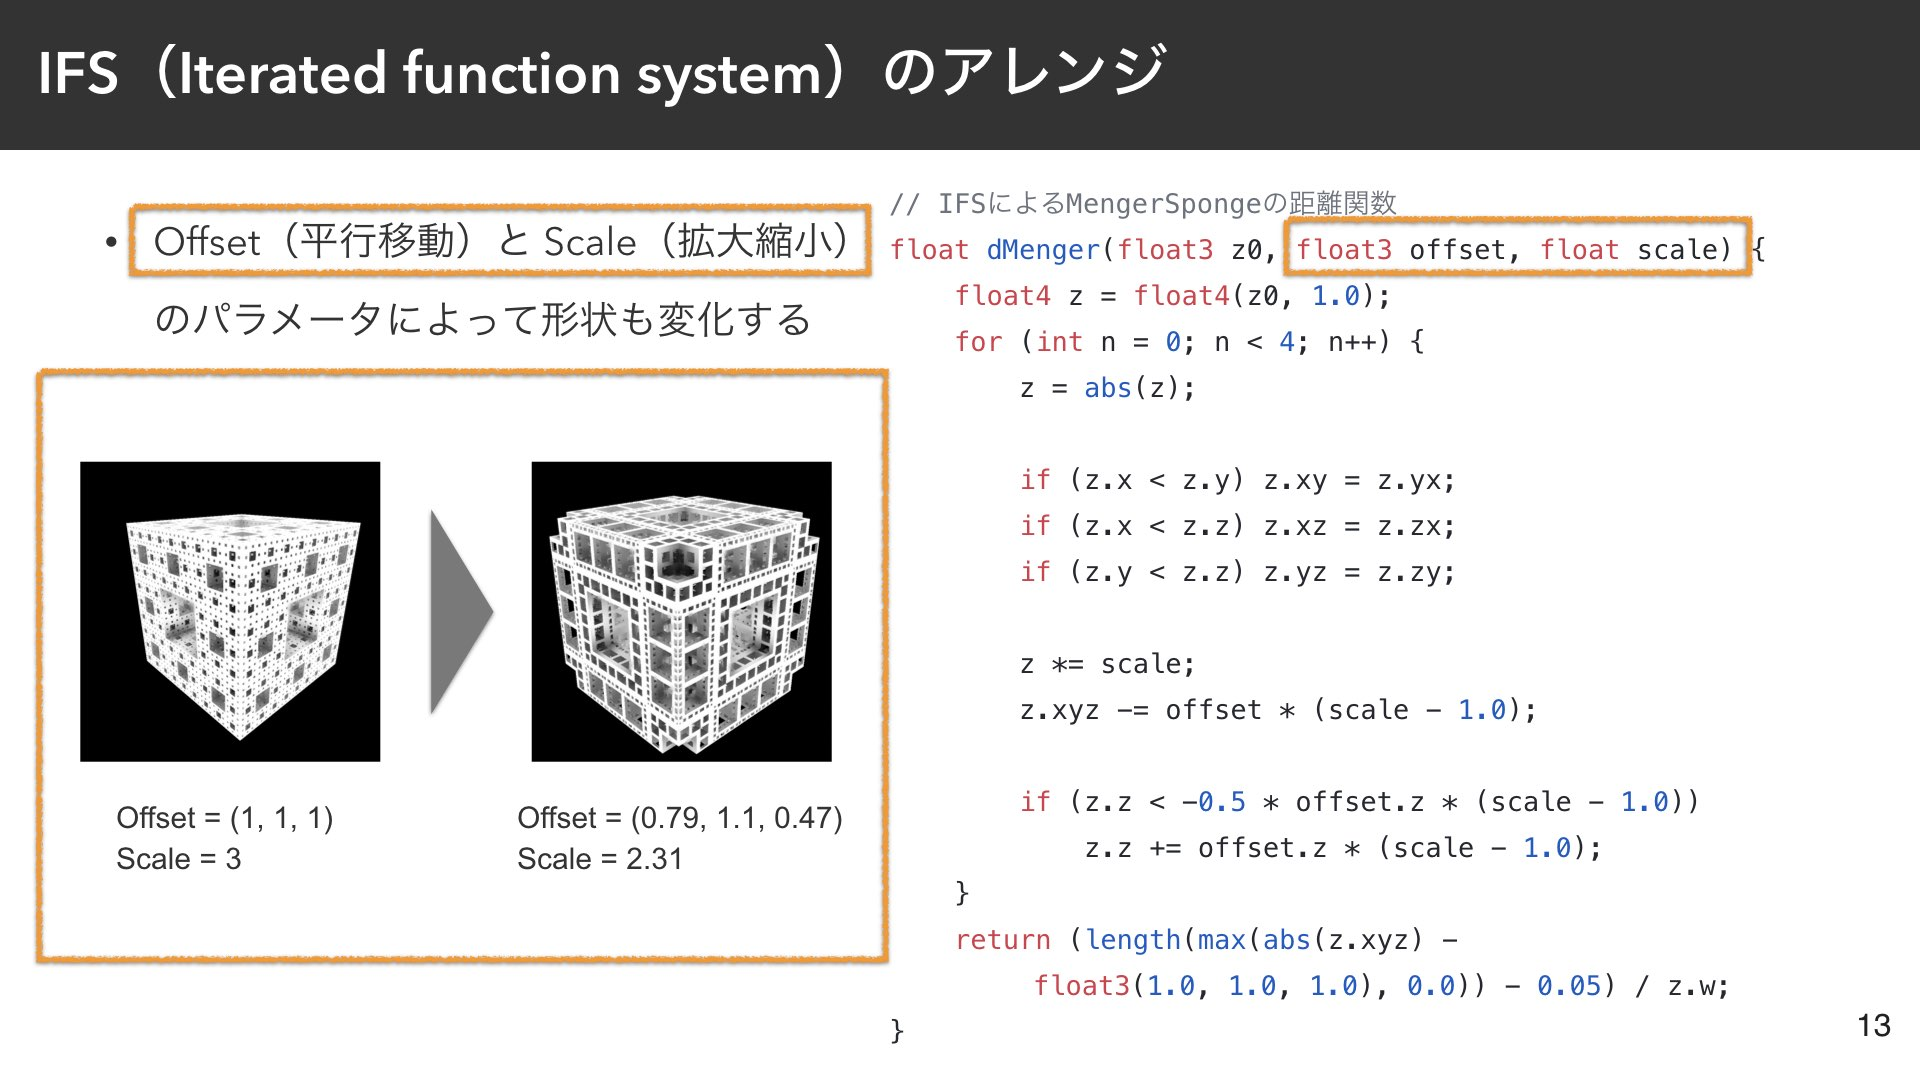 IFS(Iterated function system)のアレンジ